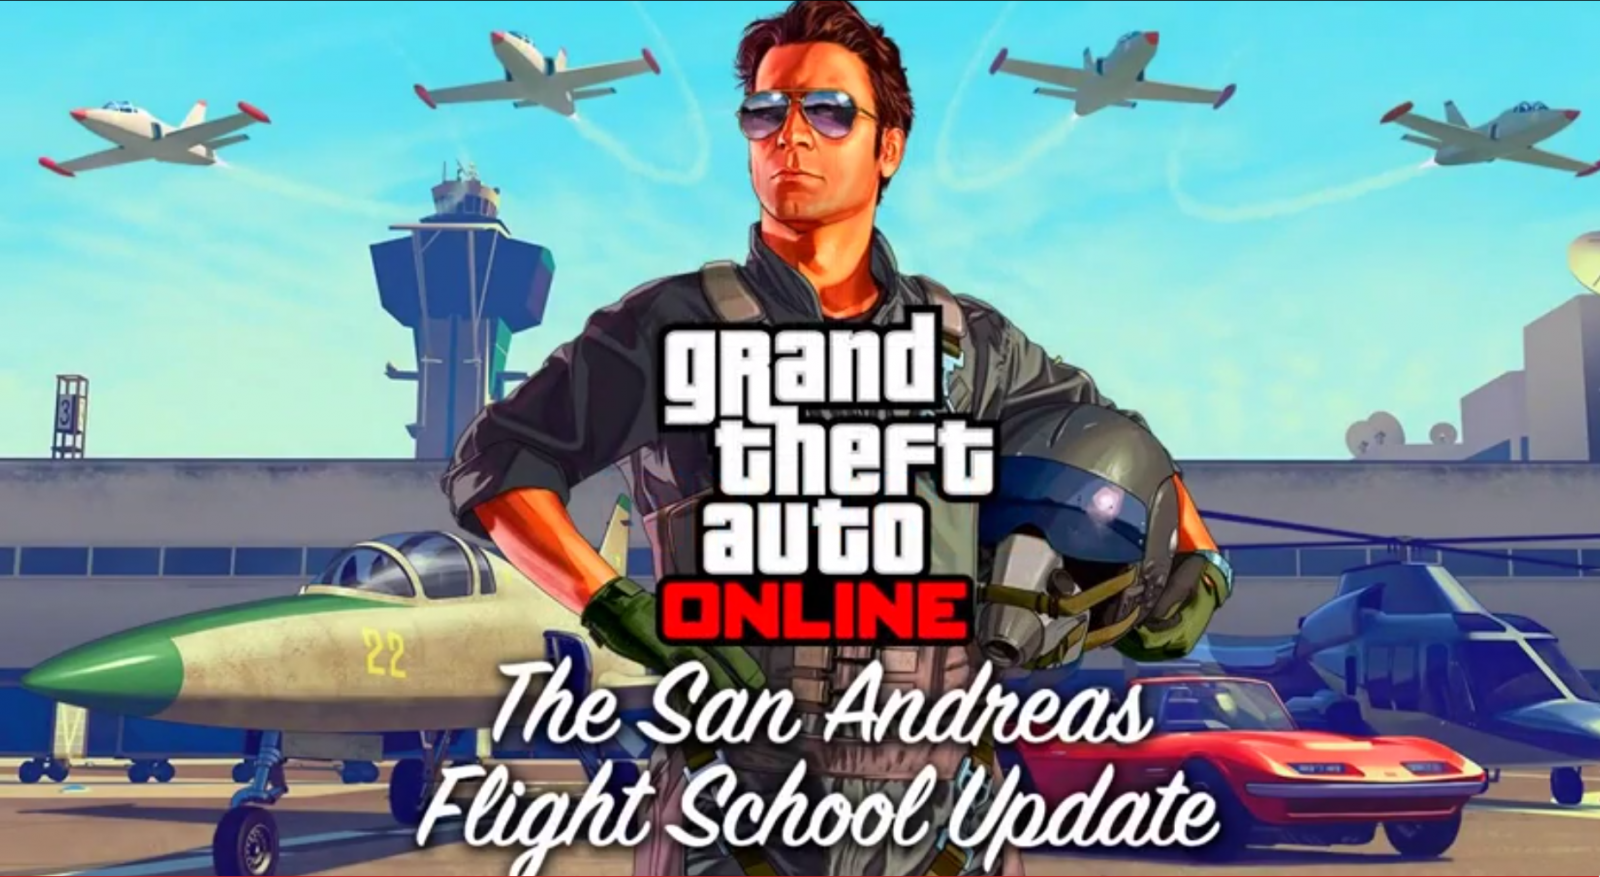 GTA 5 Glitches: How to Get Free DLC Vehicle 'Swift Helo' in GTA Online After 1.16 Patch